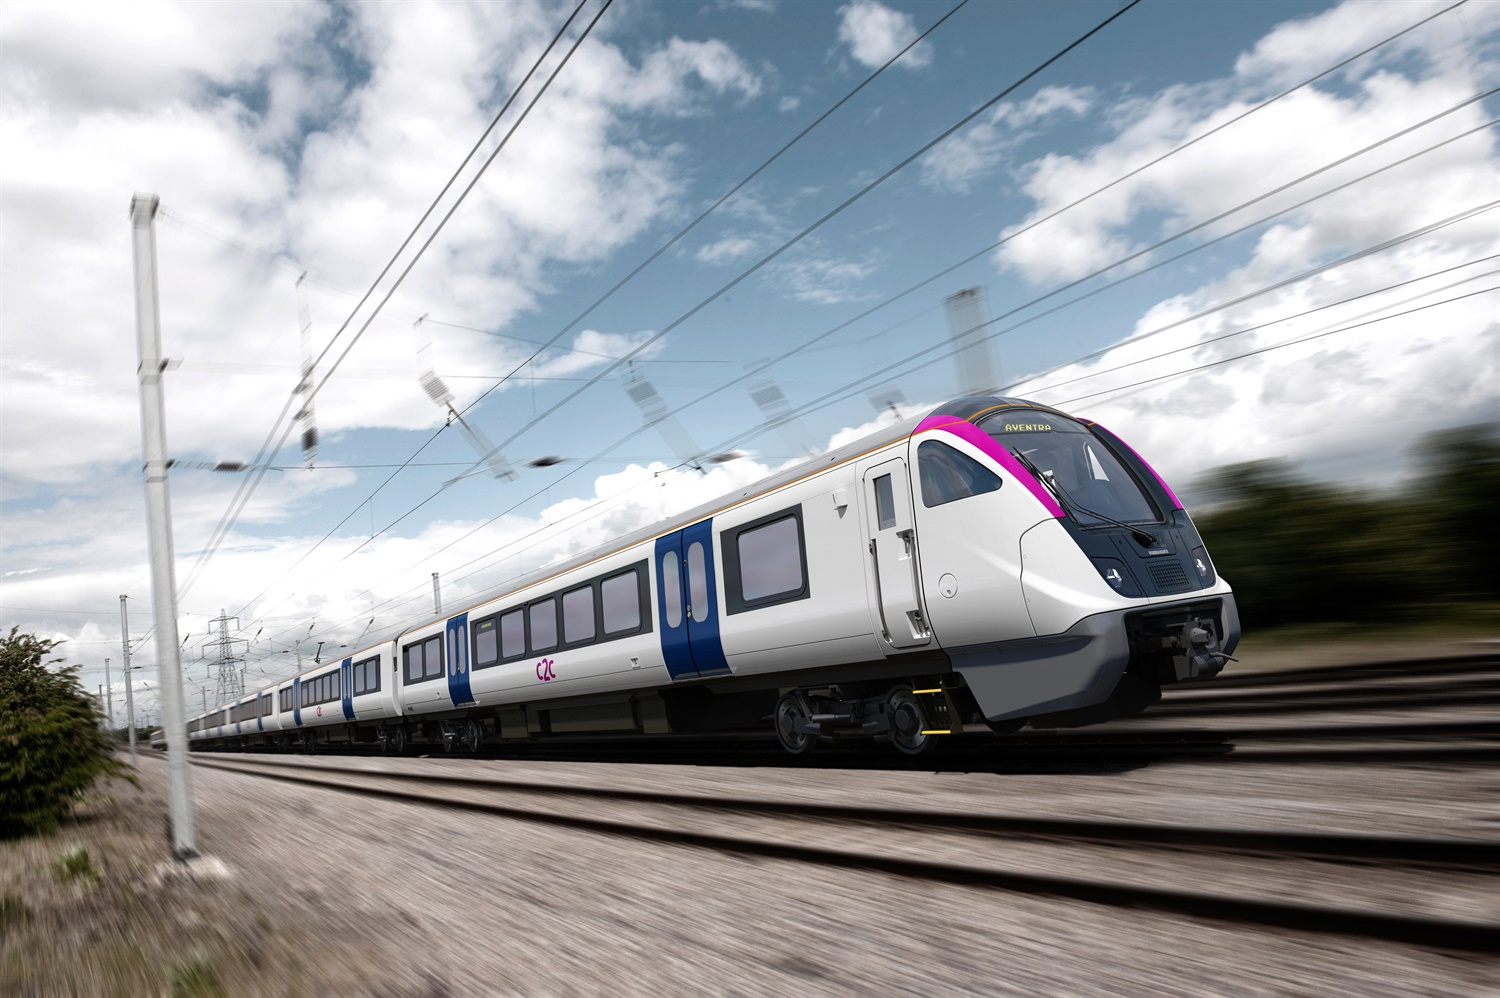 c2c announces £100m train deal with Bombardier